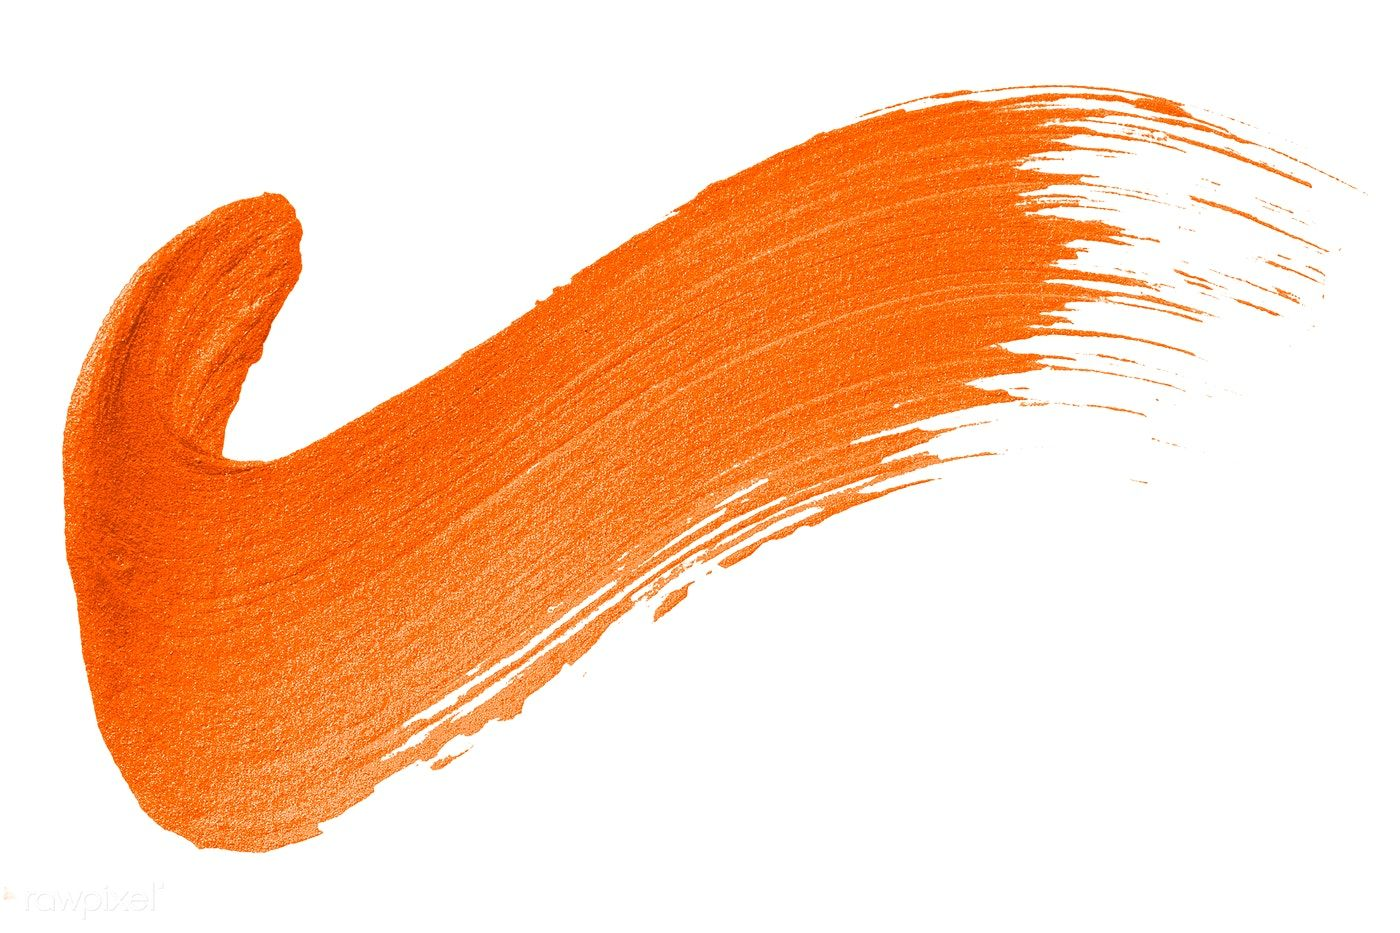 Tick mark shimmery orange brush stroke free image by